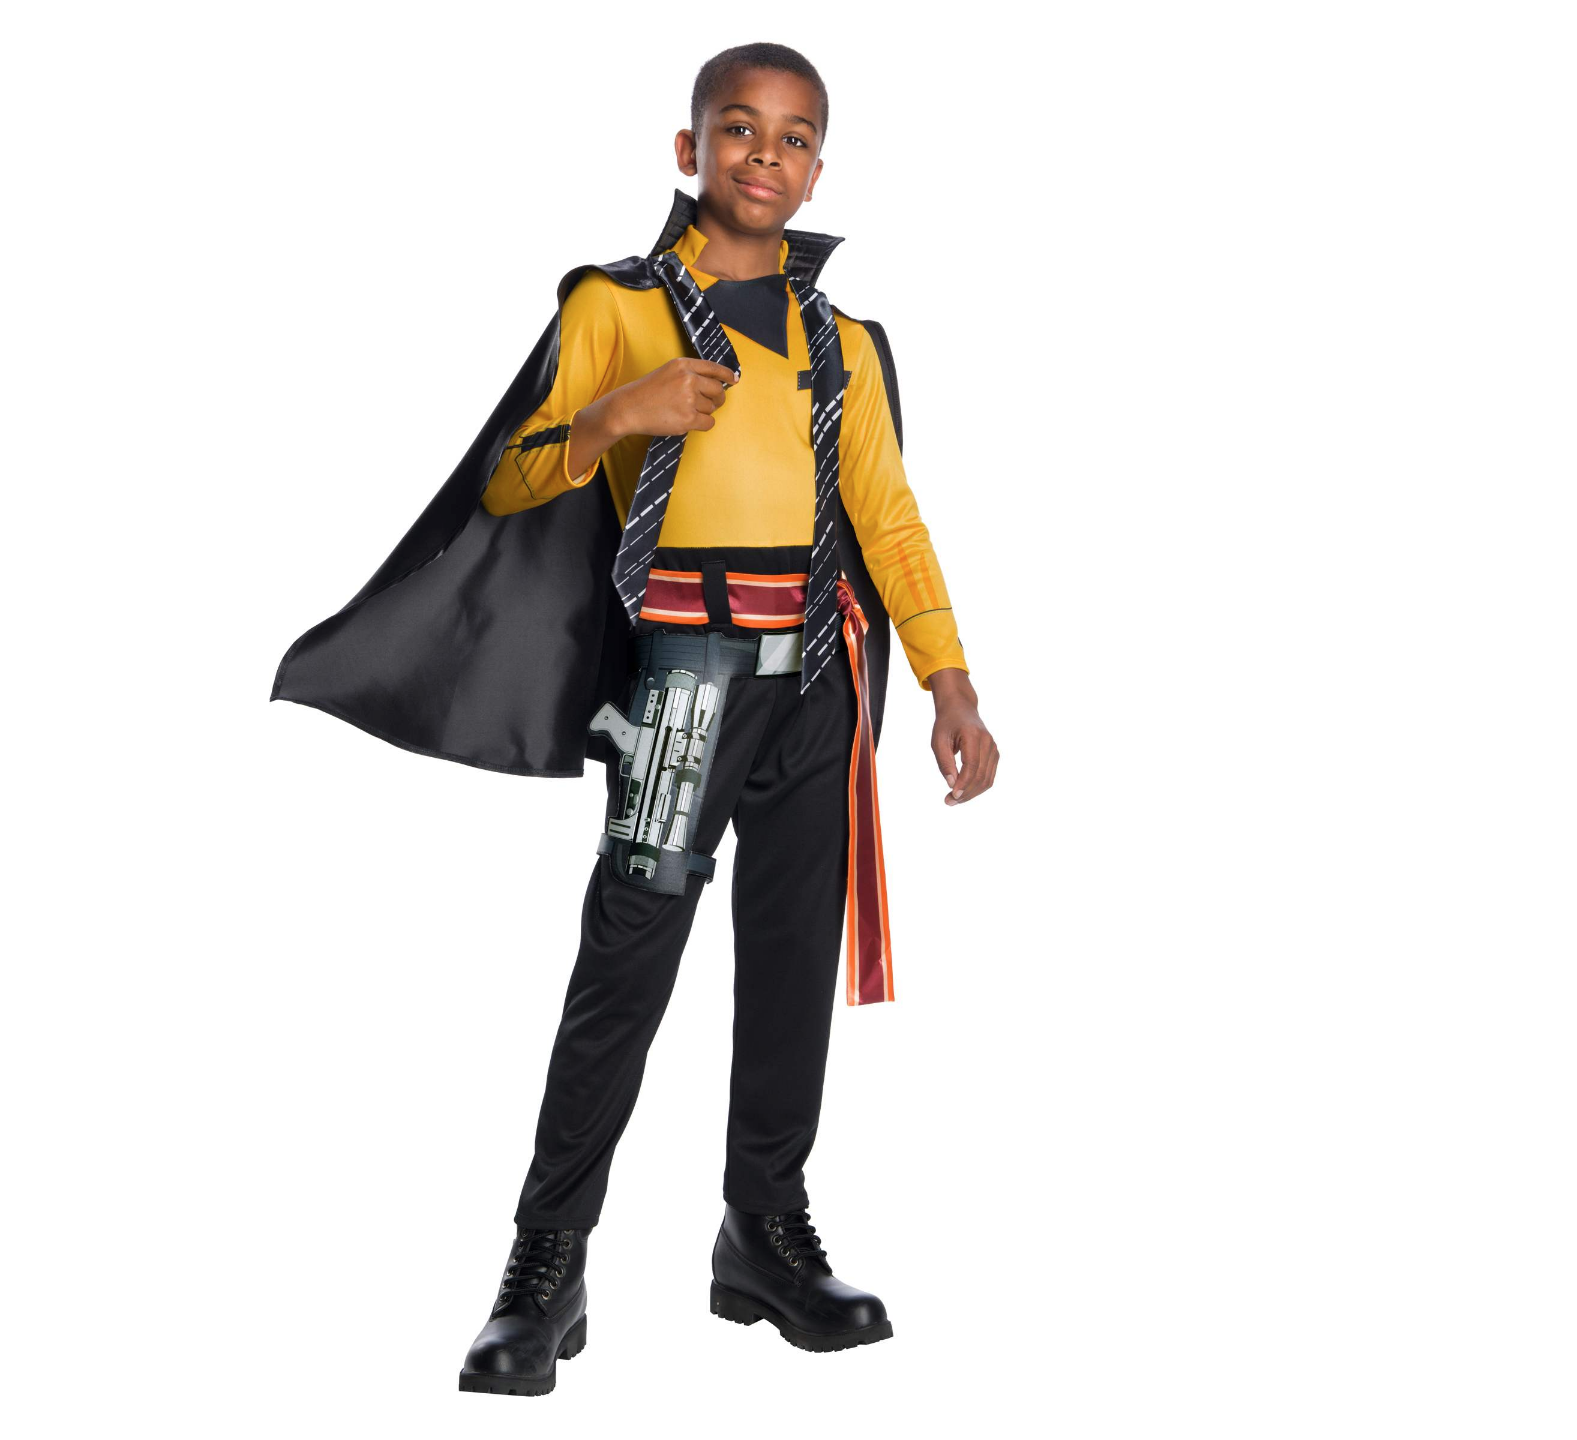 Star Wars Halloween Costumes.Lando Calrissian Star Wars Costume Idea